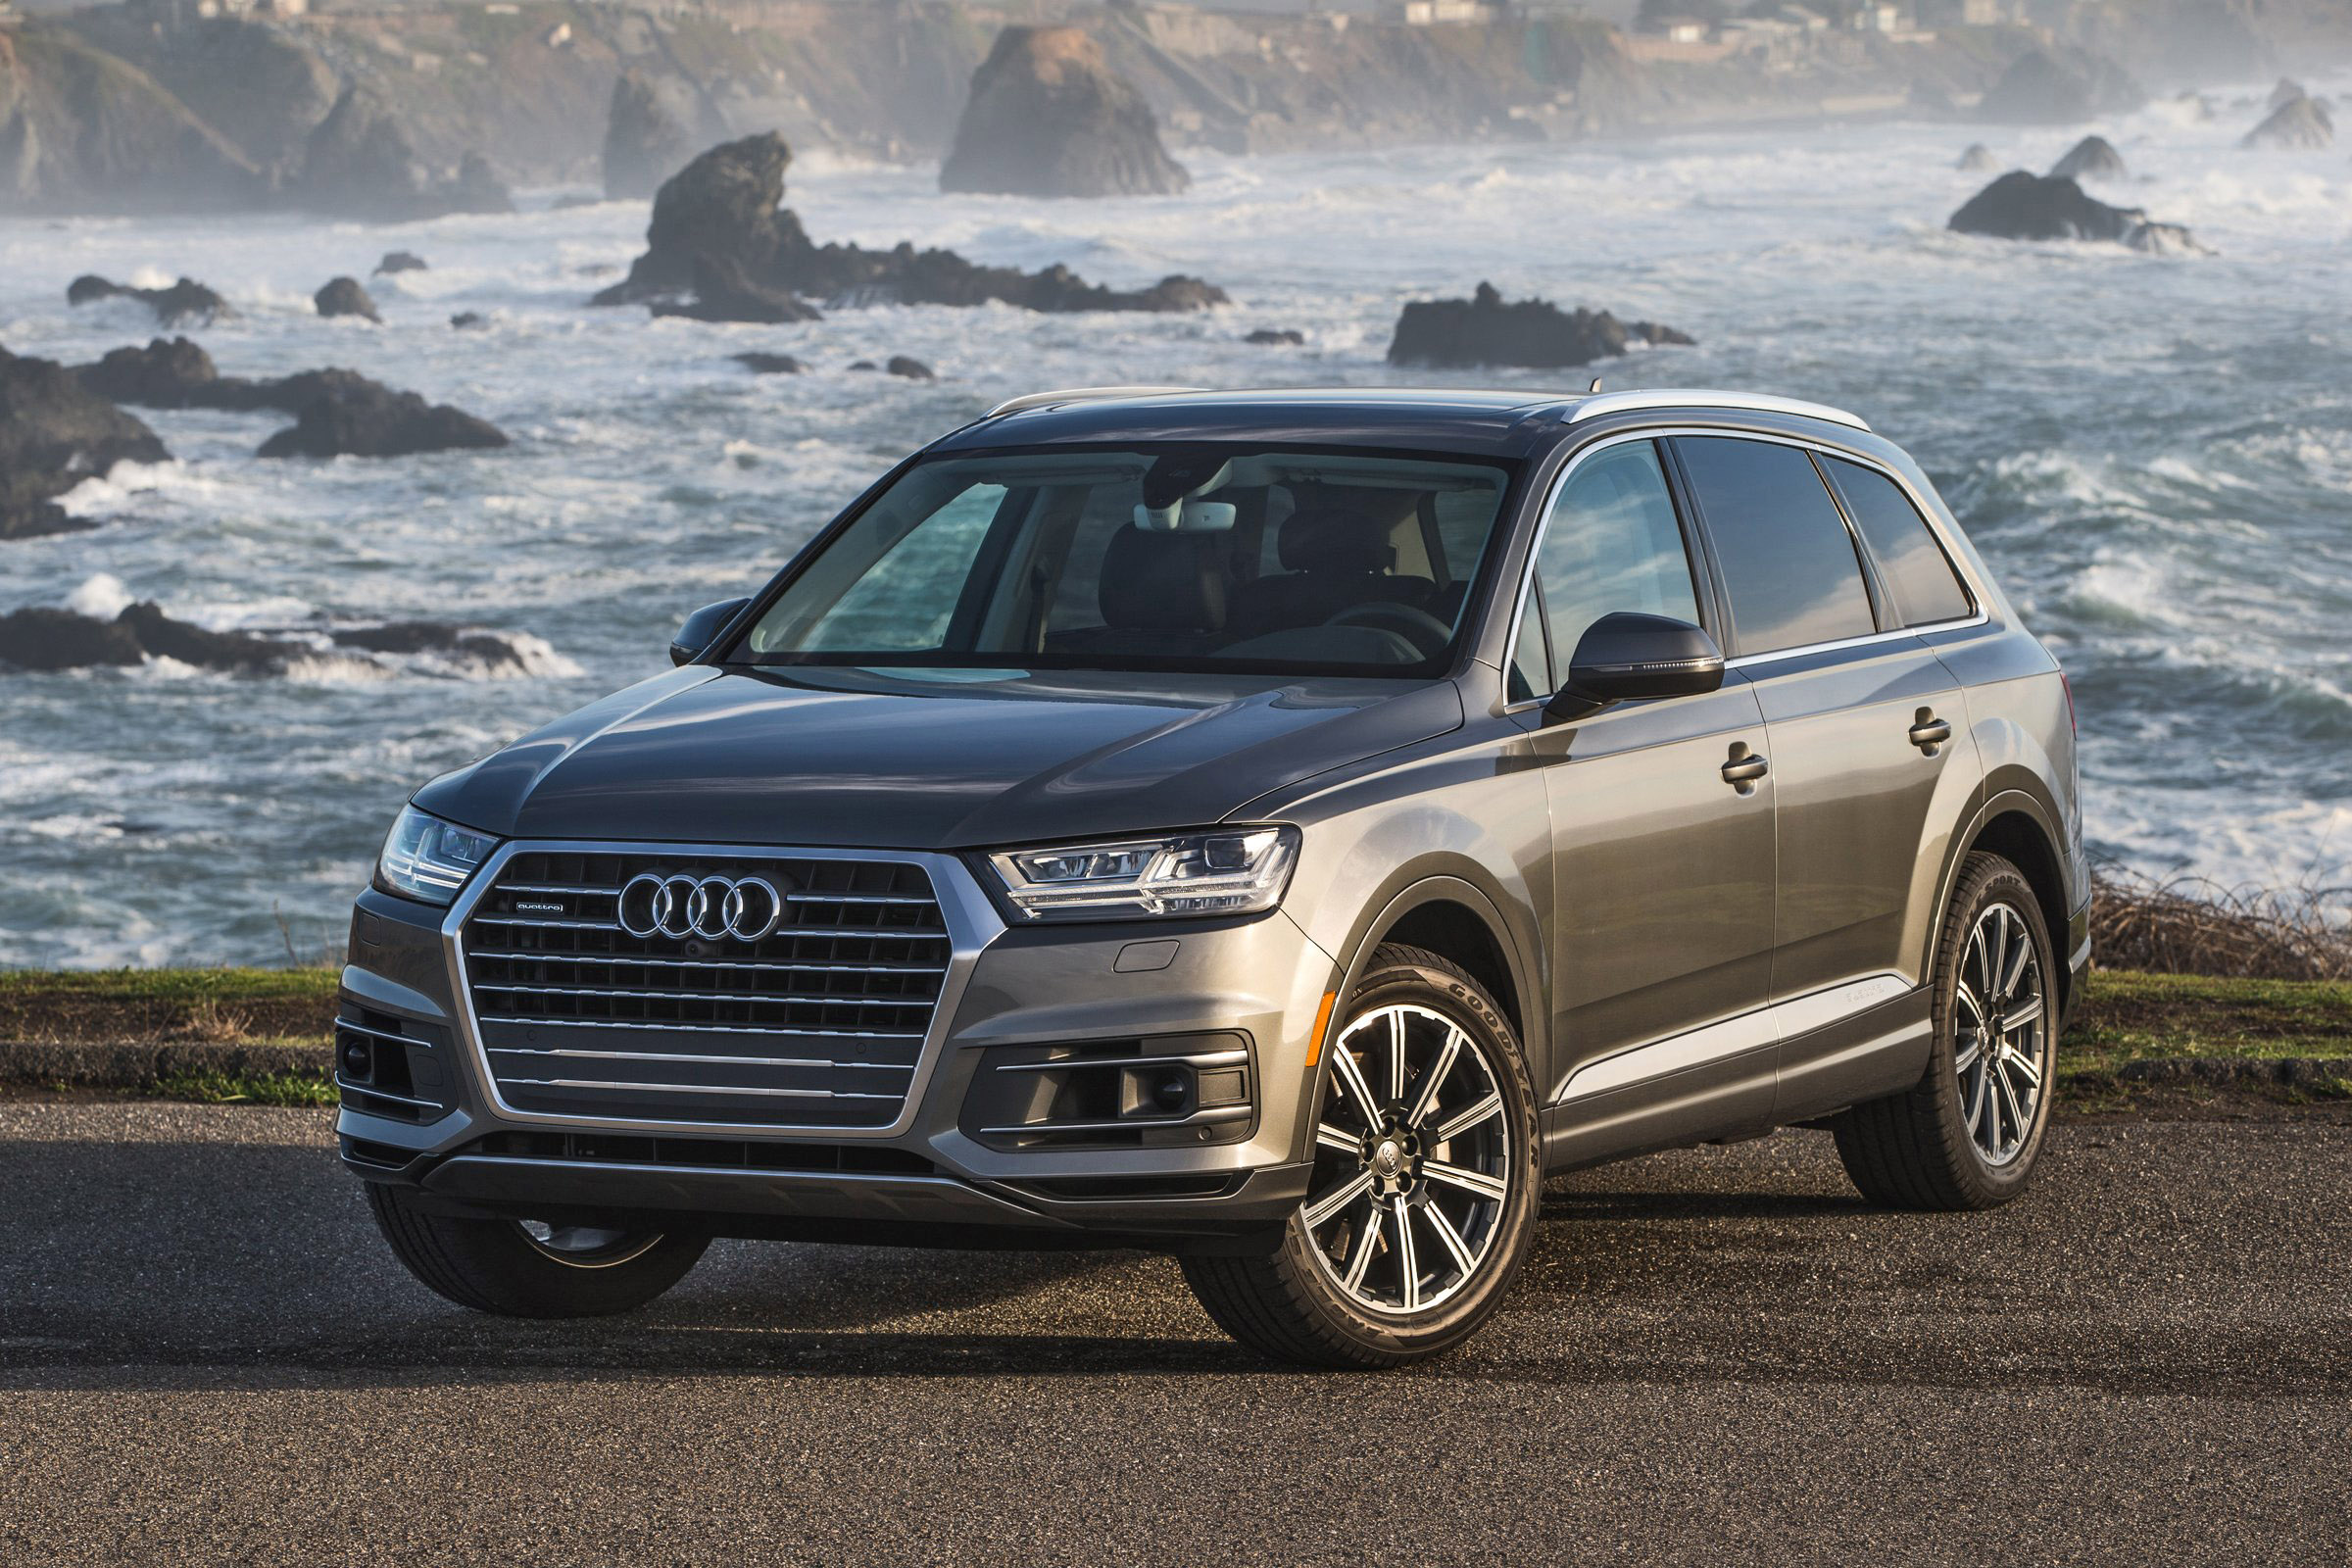 2017 Audi Q7 Visualizer - Colors, Cabins, Pricing and Options Guide